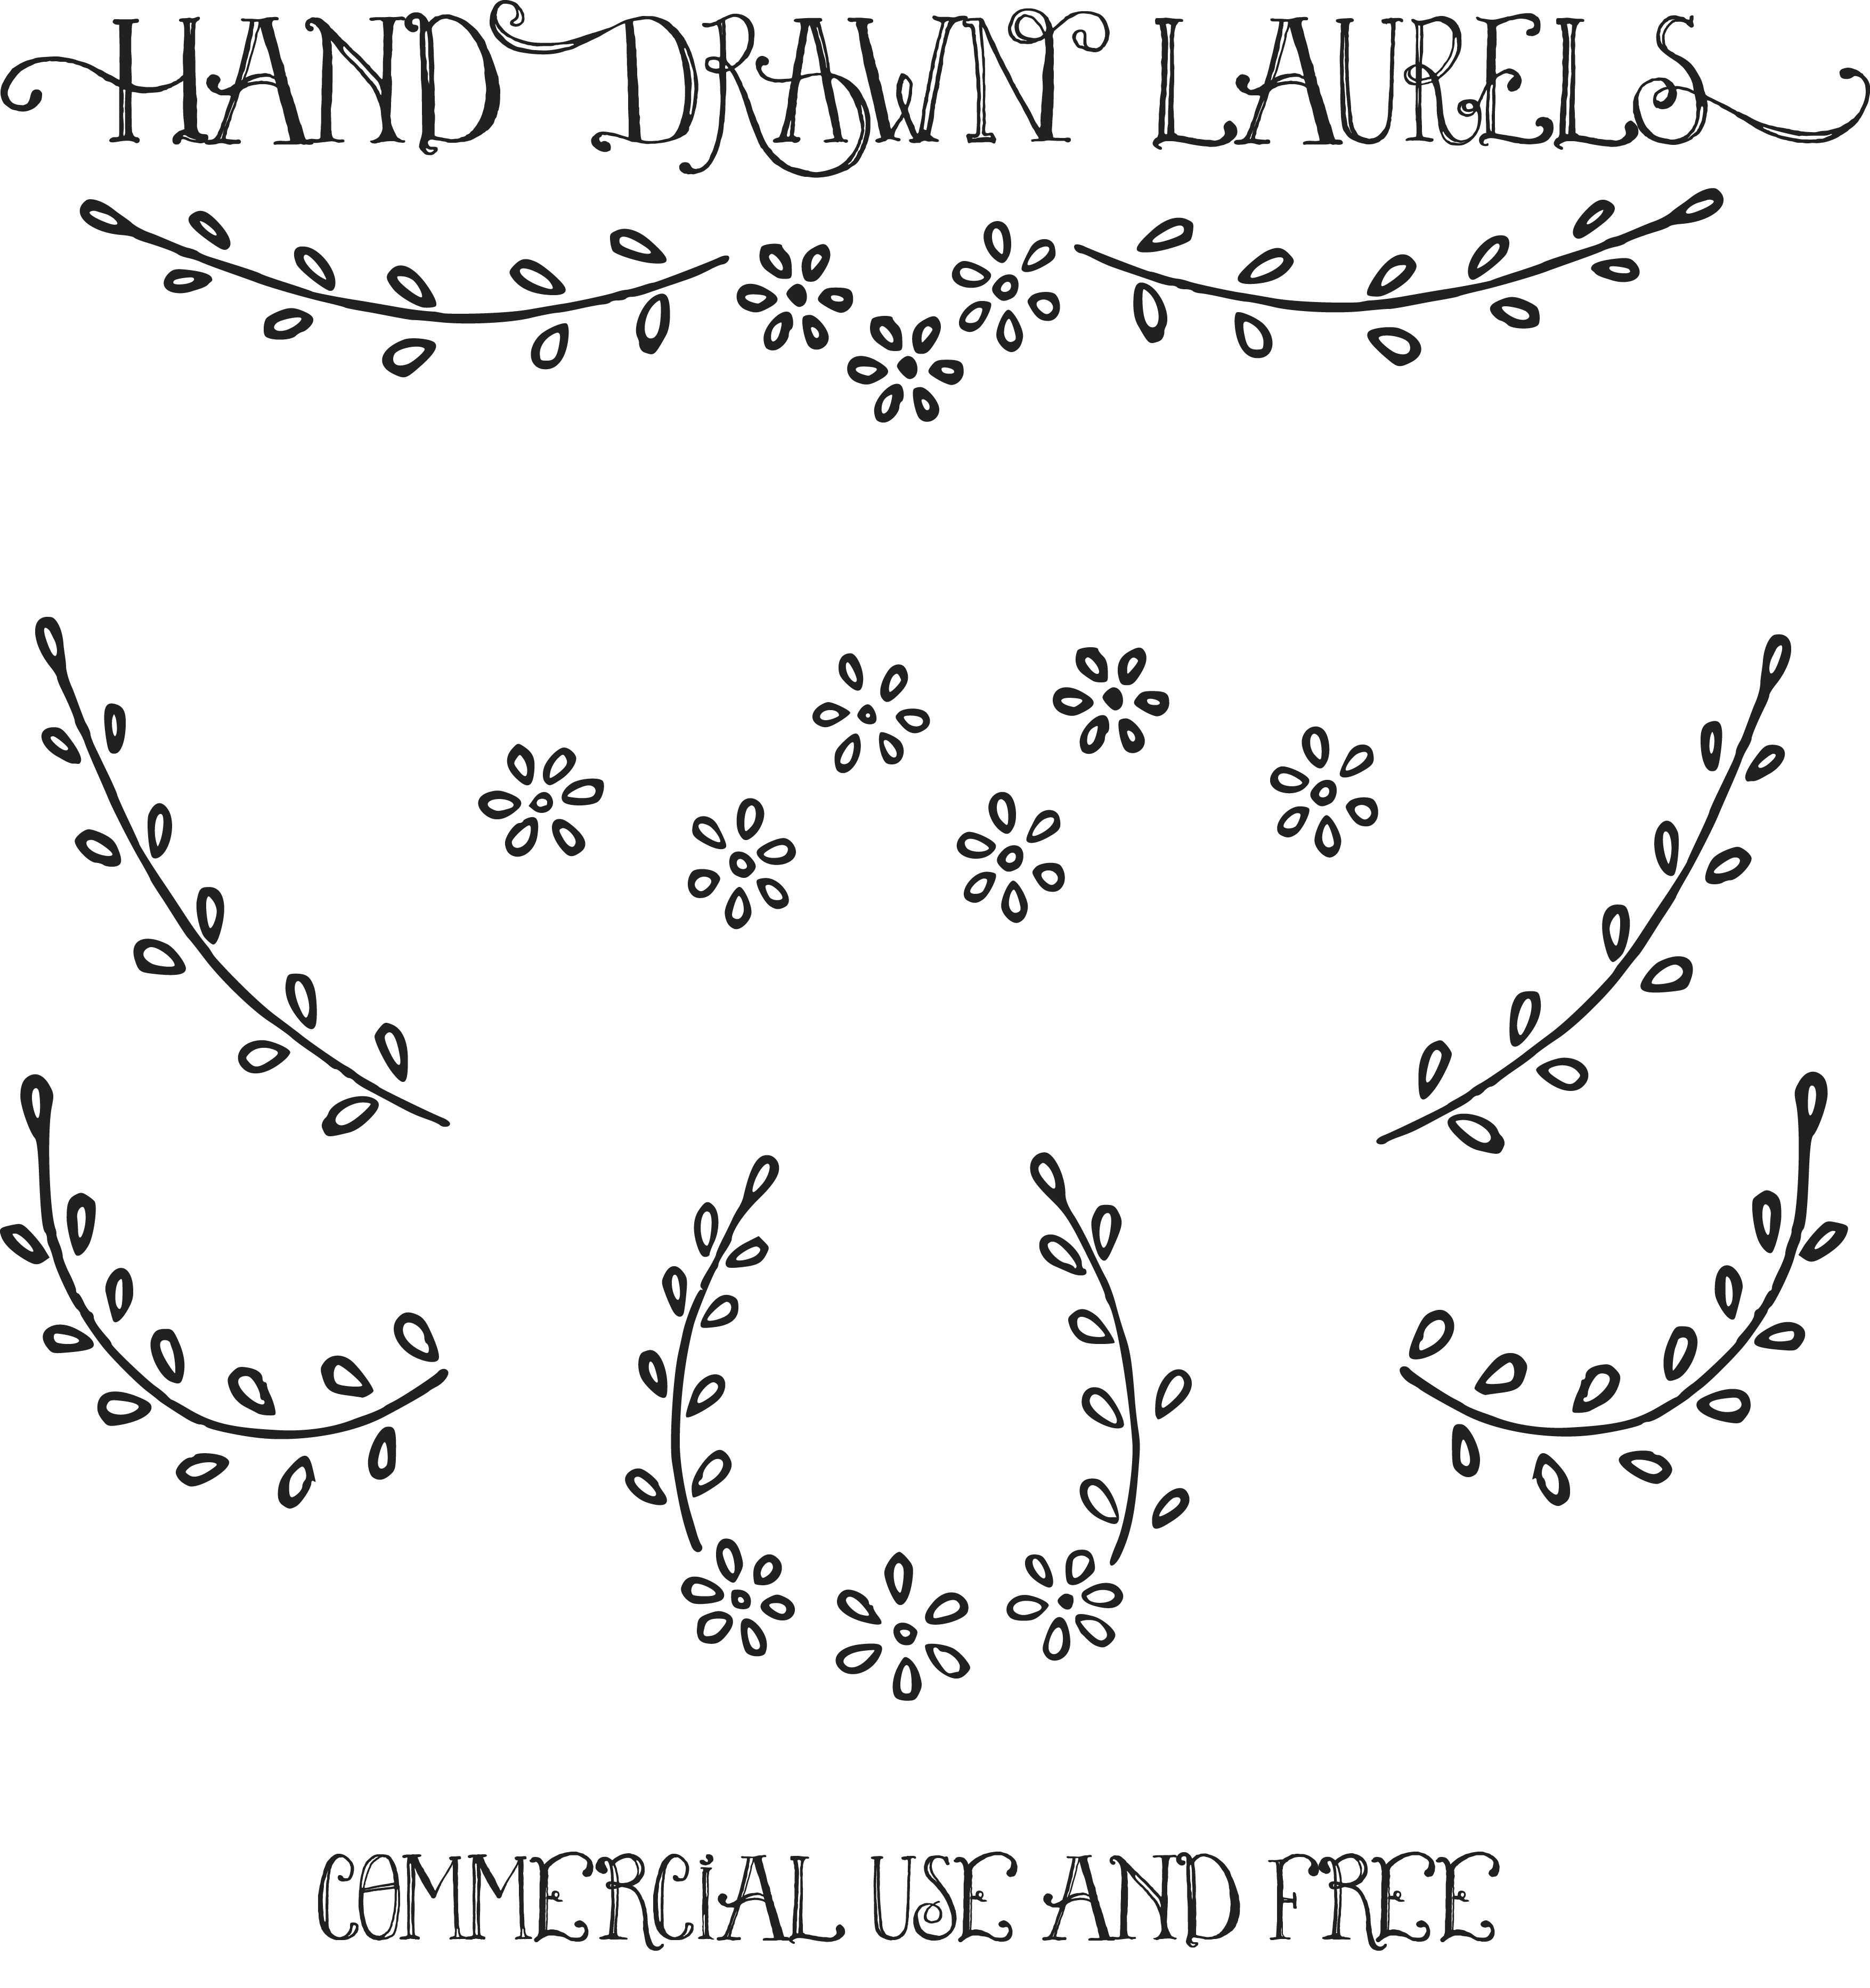 Download Royalty Free Images u2013 Hand Drawn Laurels Clip Art u0026 Vectors - Free PNG HD Images For Commercial Use